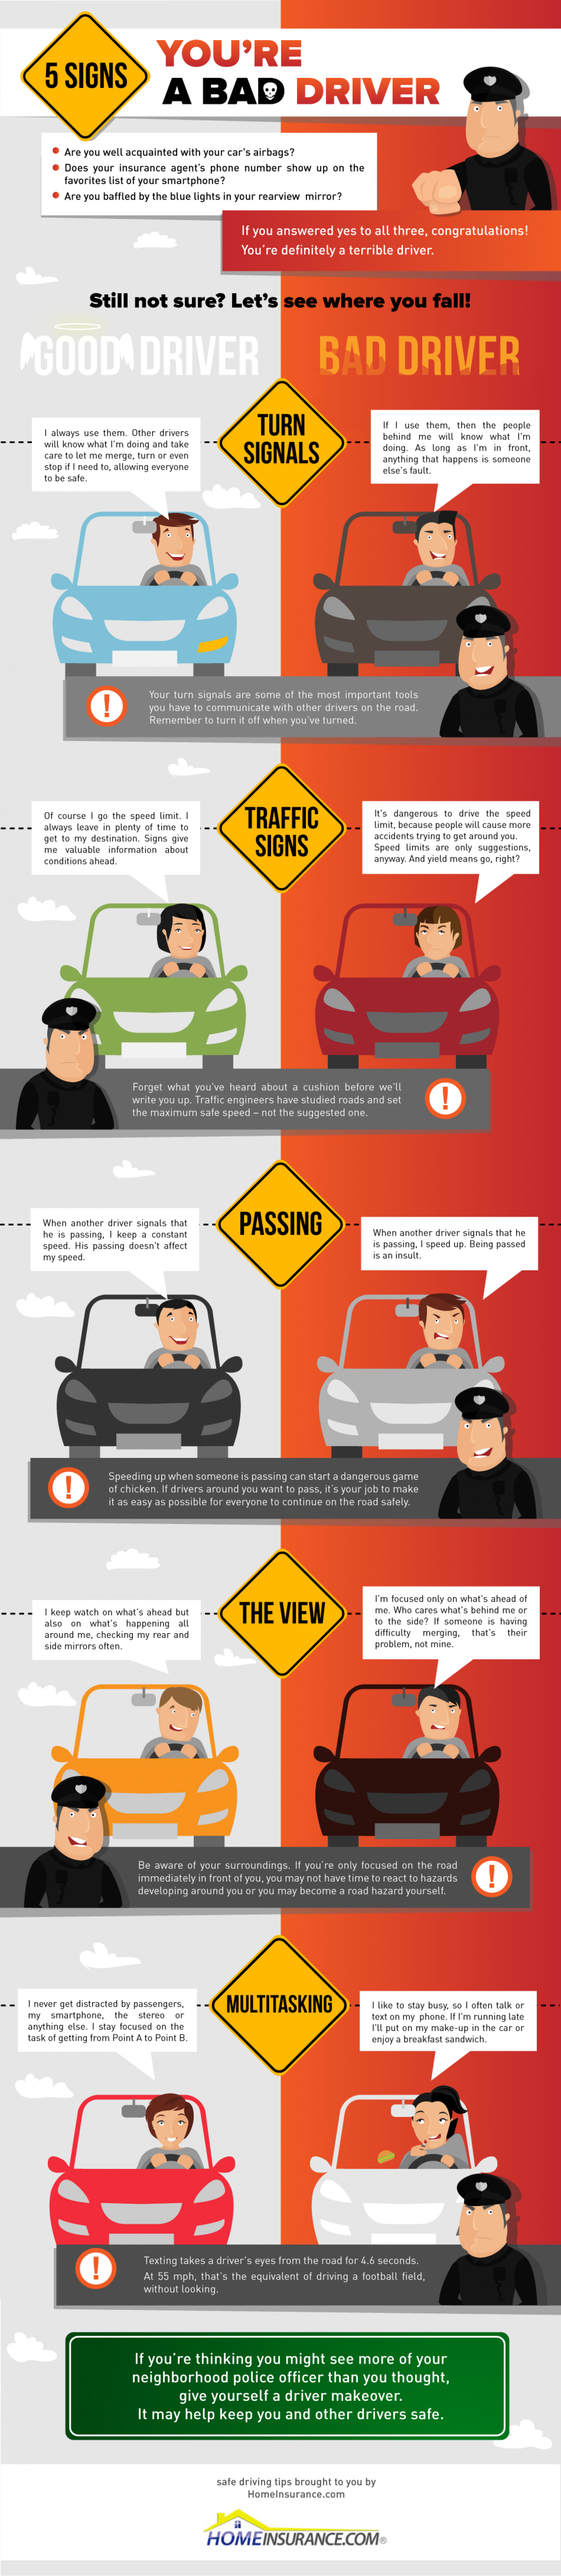 5 Signs You're a Bad Driver Infographic